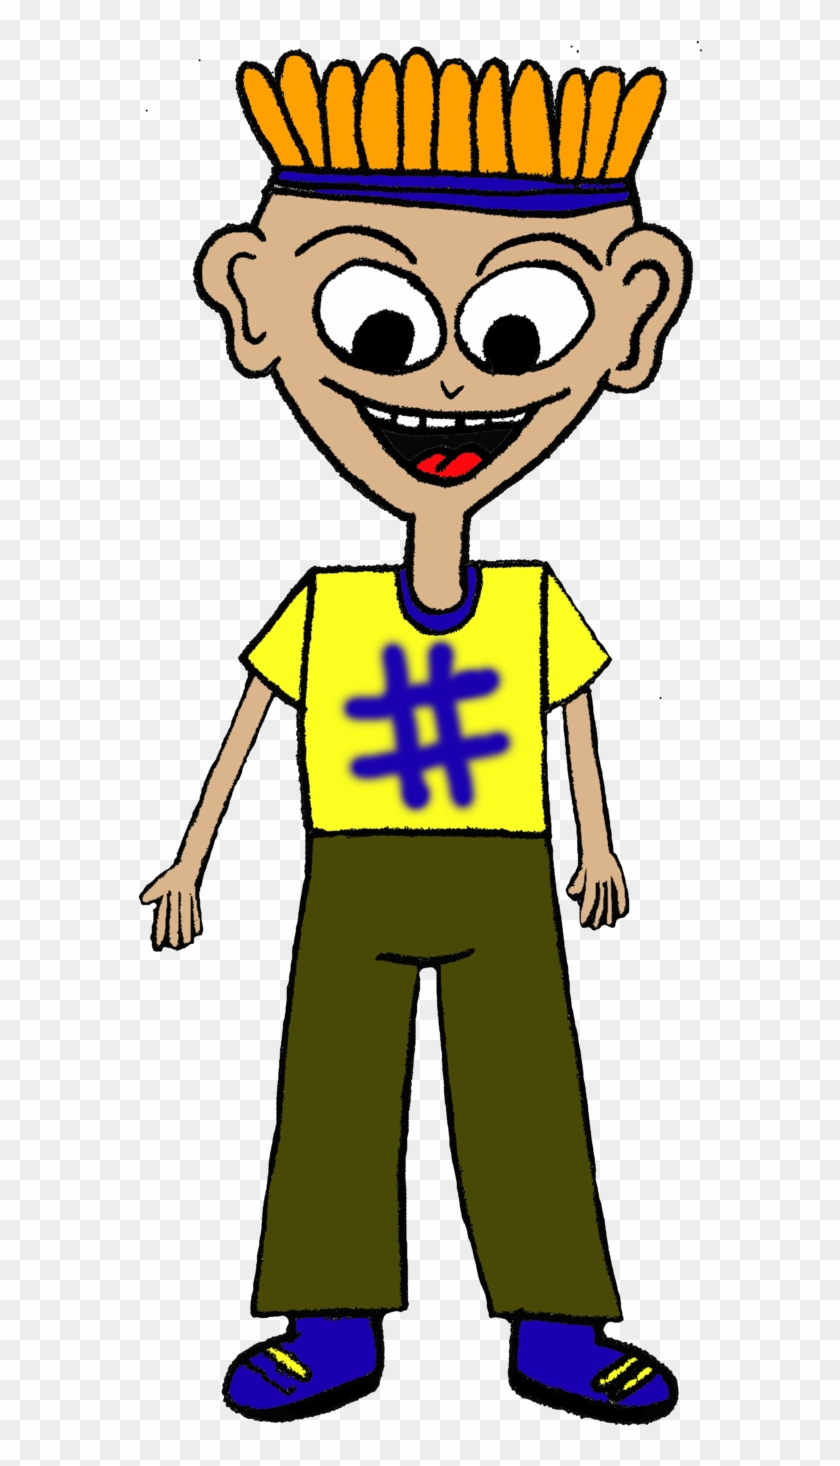 Smiling Cartoon Boy By Maryoom7 On Clipart Library - Cartoon #302007